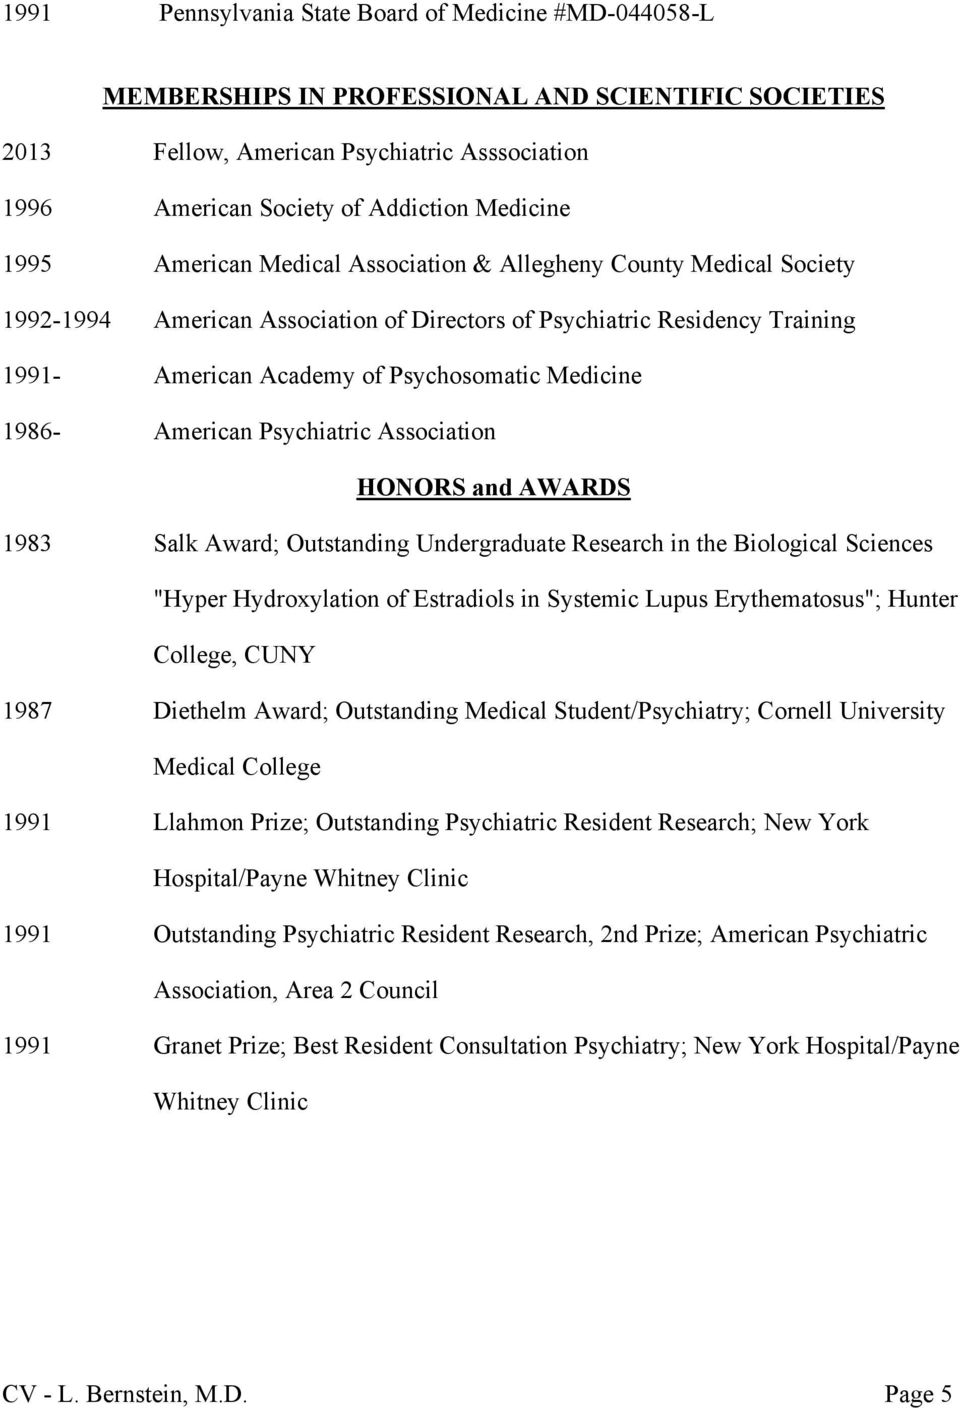 "1986- American Psychiatric Association HONORS and AWARDS 1983 Salk Award; Outstanding Undergraduate Research in the Biological Sciences ""Hyper Hydroxylation of Estradiols in Systemic Lupus"